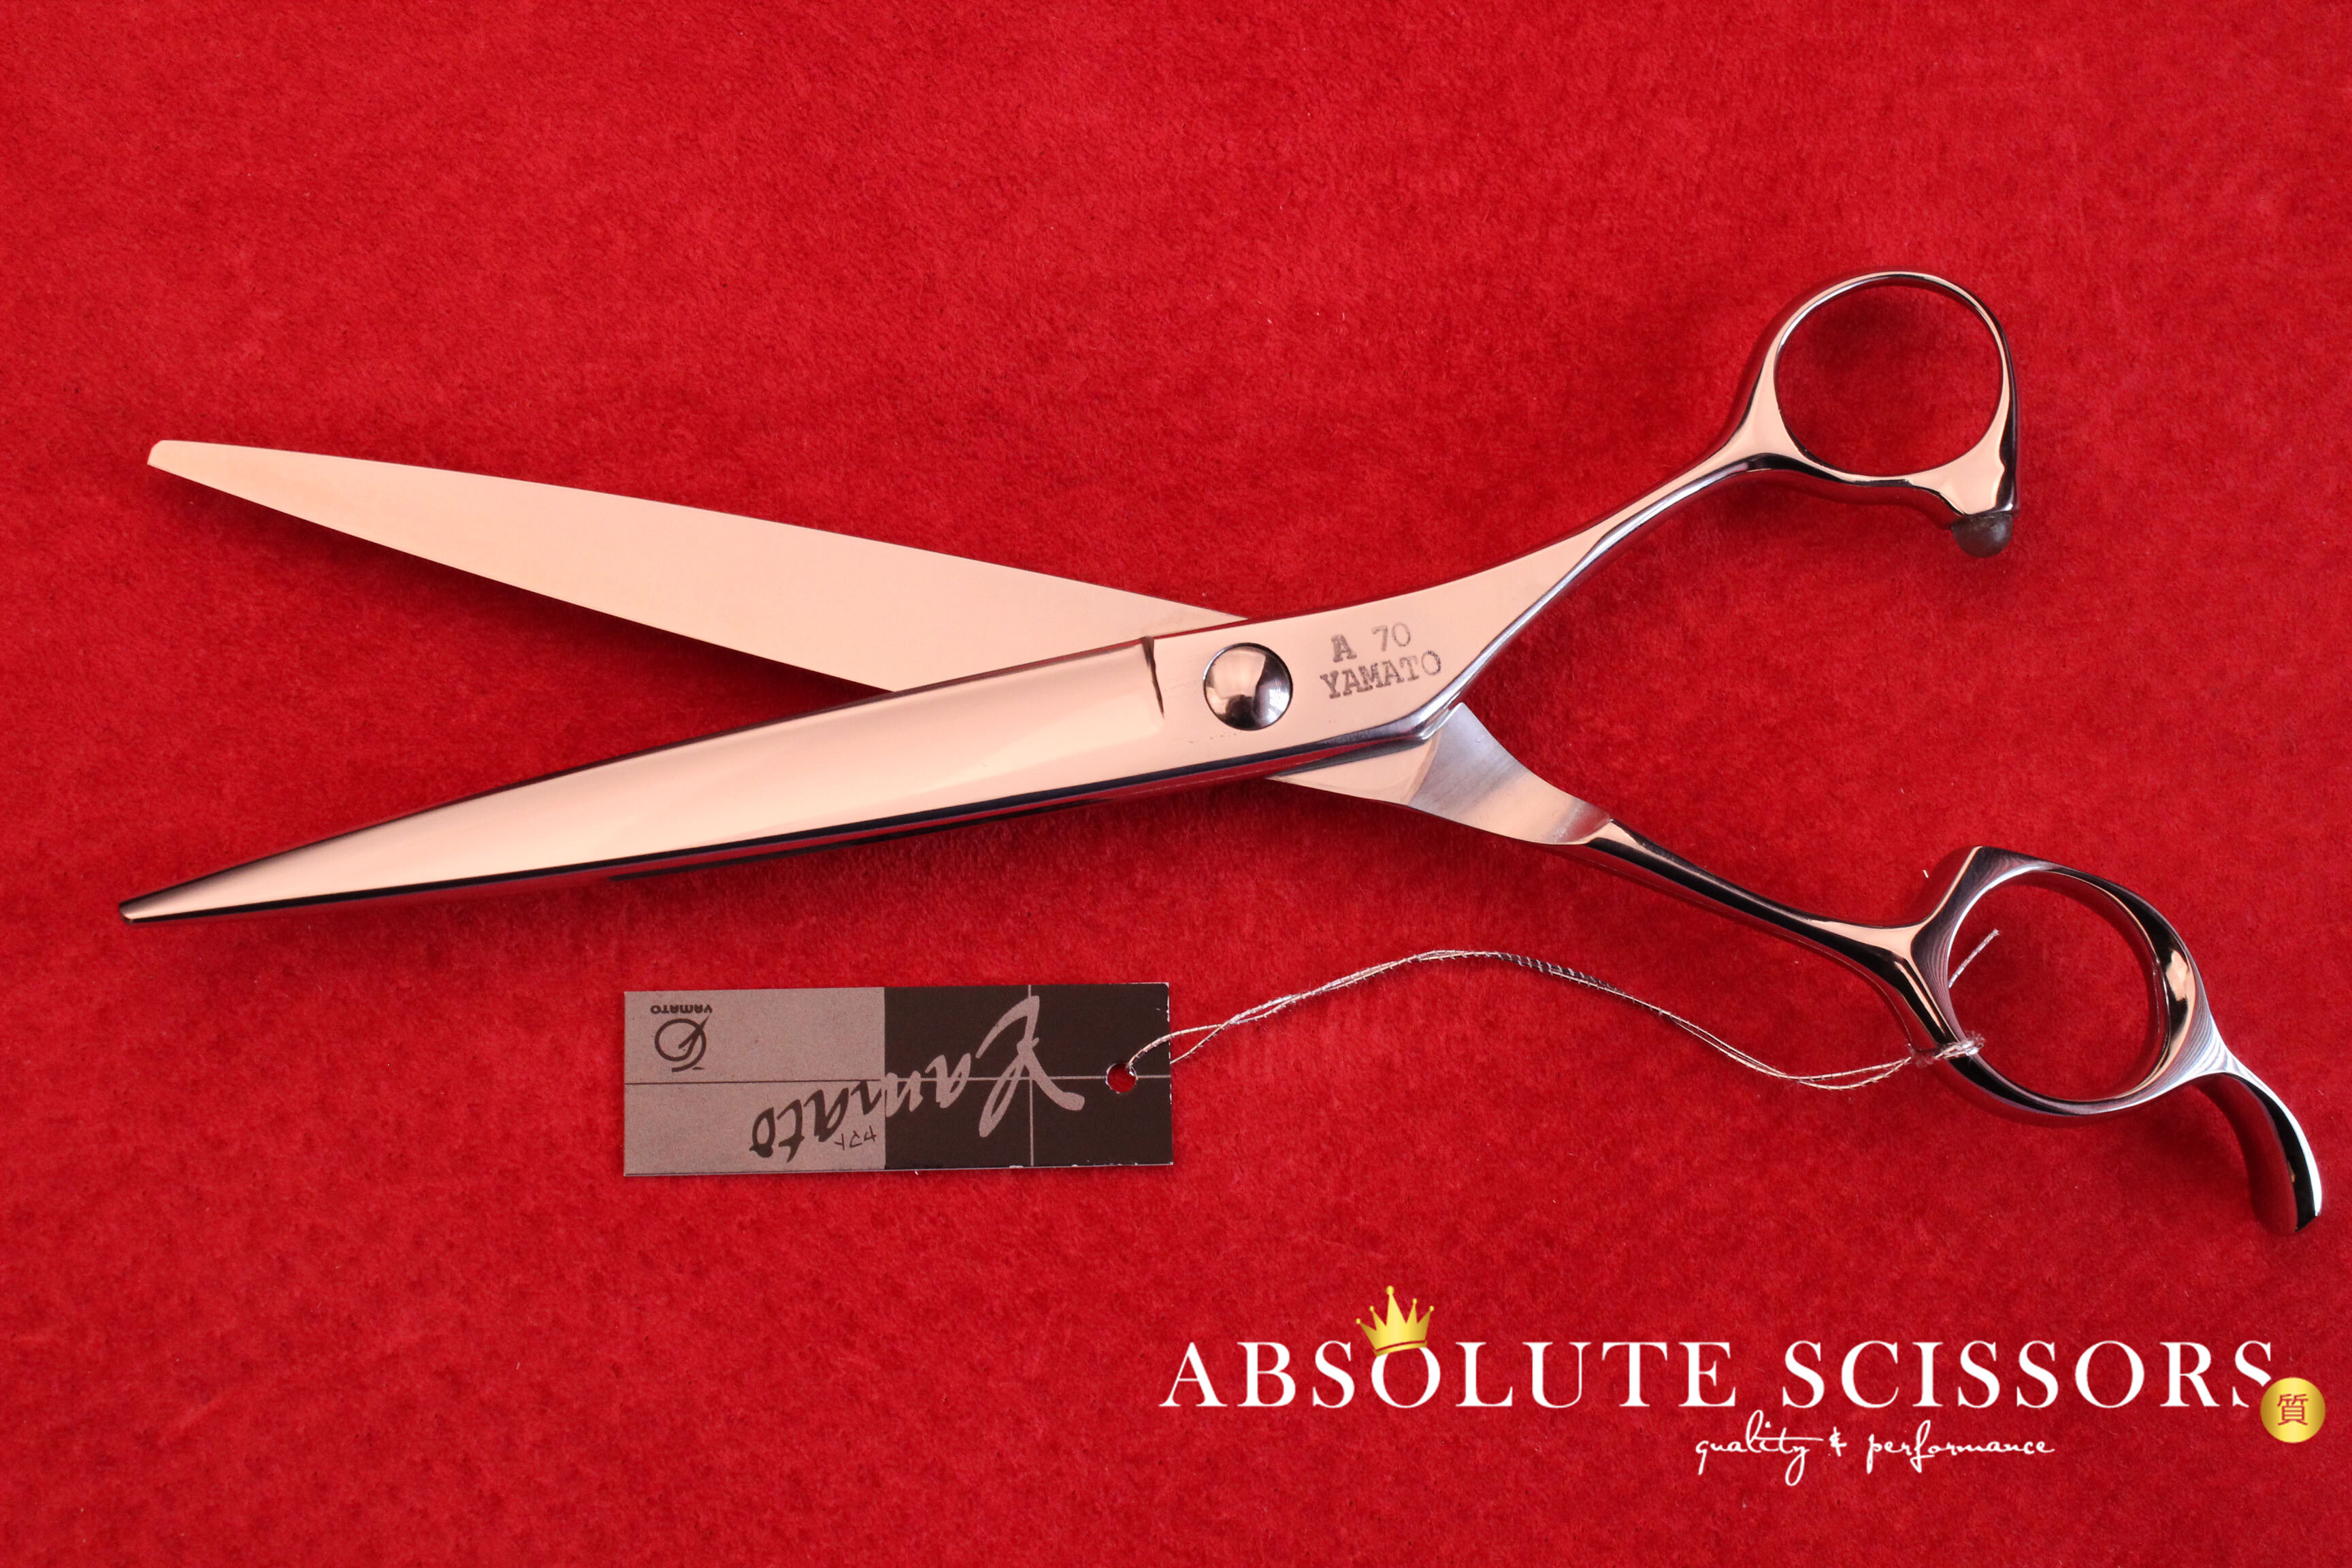 A70 3684 Yamato hair shears size 7 inches